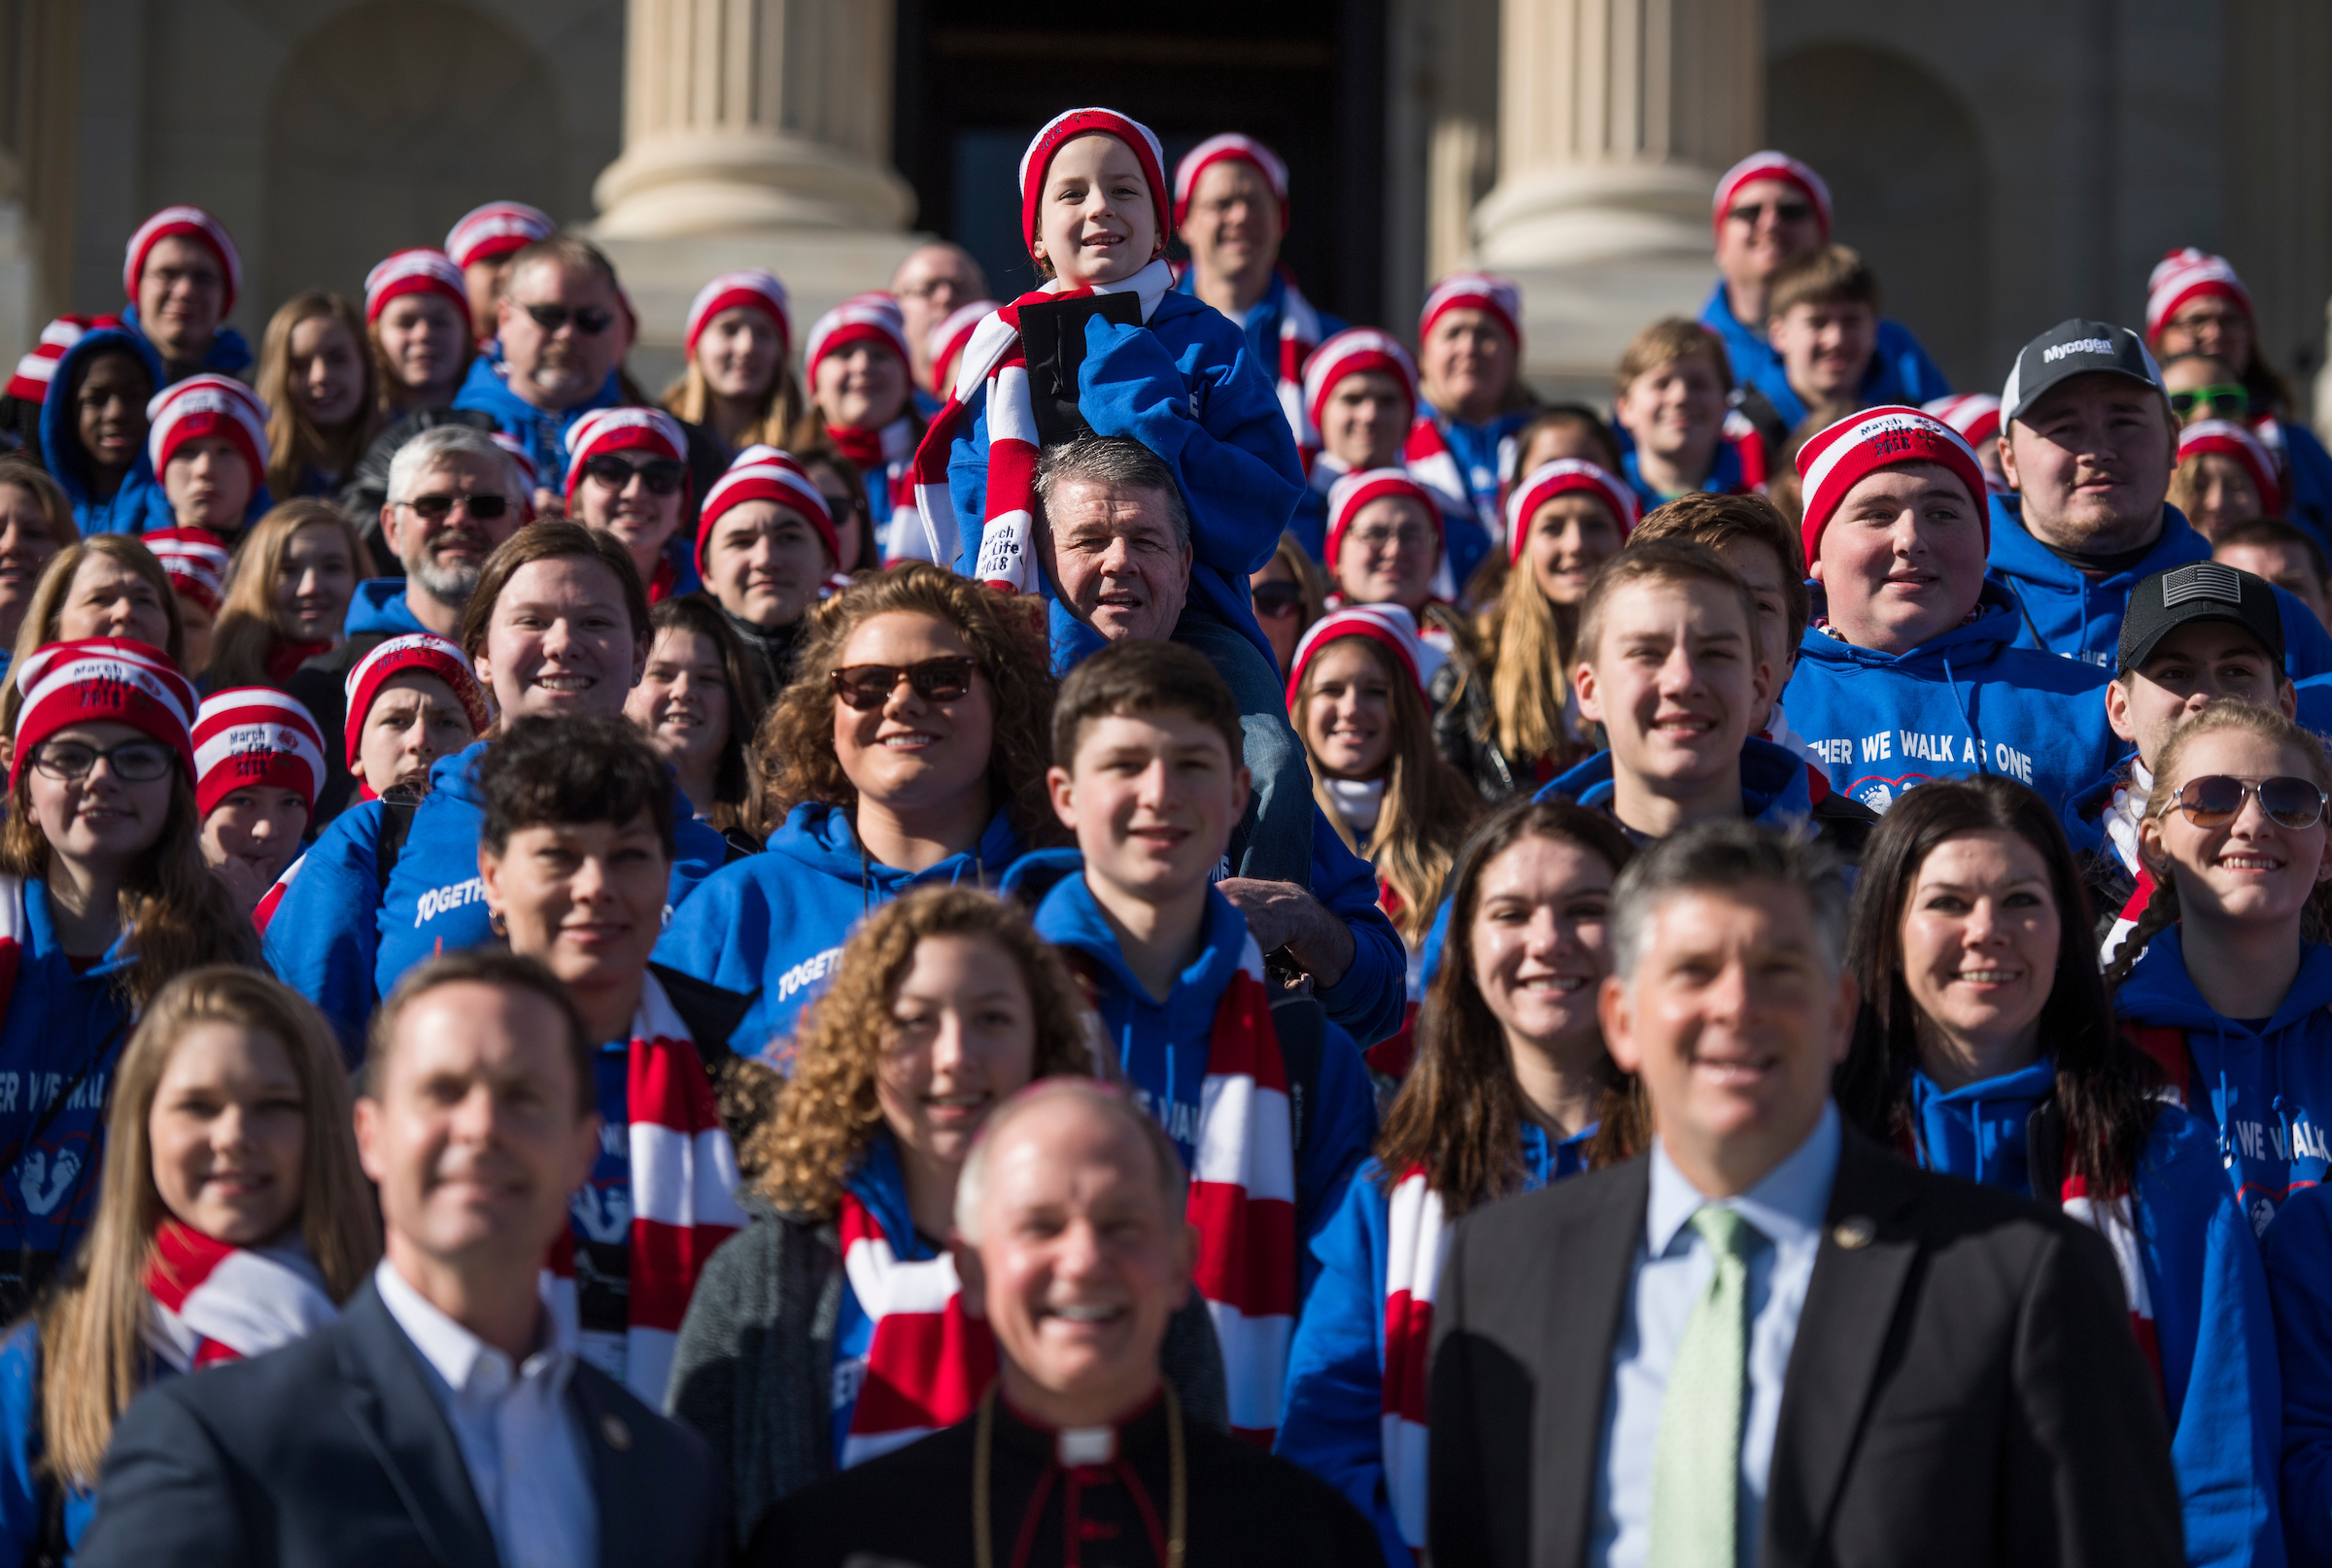 UNITED STATES - JANUARY 19: Bottom row from right, Rep. Rodney Davis, R-Ill., Bishop Thomas Paprocki of Springfield, Ill., and Rep. Darin LaHood, R-Ill., pose on the Capitol steps with attendees of the March for Life after the House's last scheduled vote as the Senate considers the continuing resolution to fund the government on January 19, 2018. (Photo By Tom Williams/CQ Roll Call)